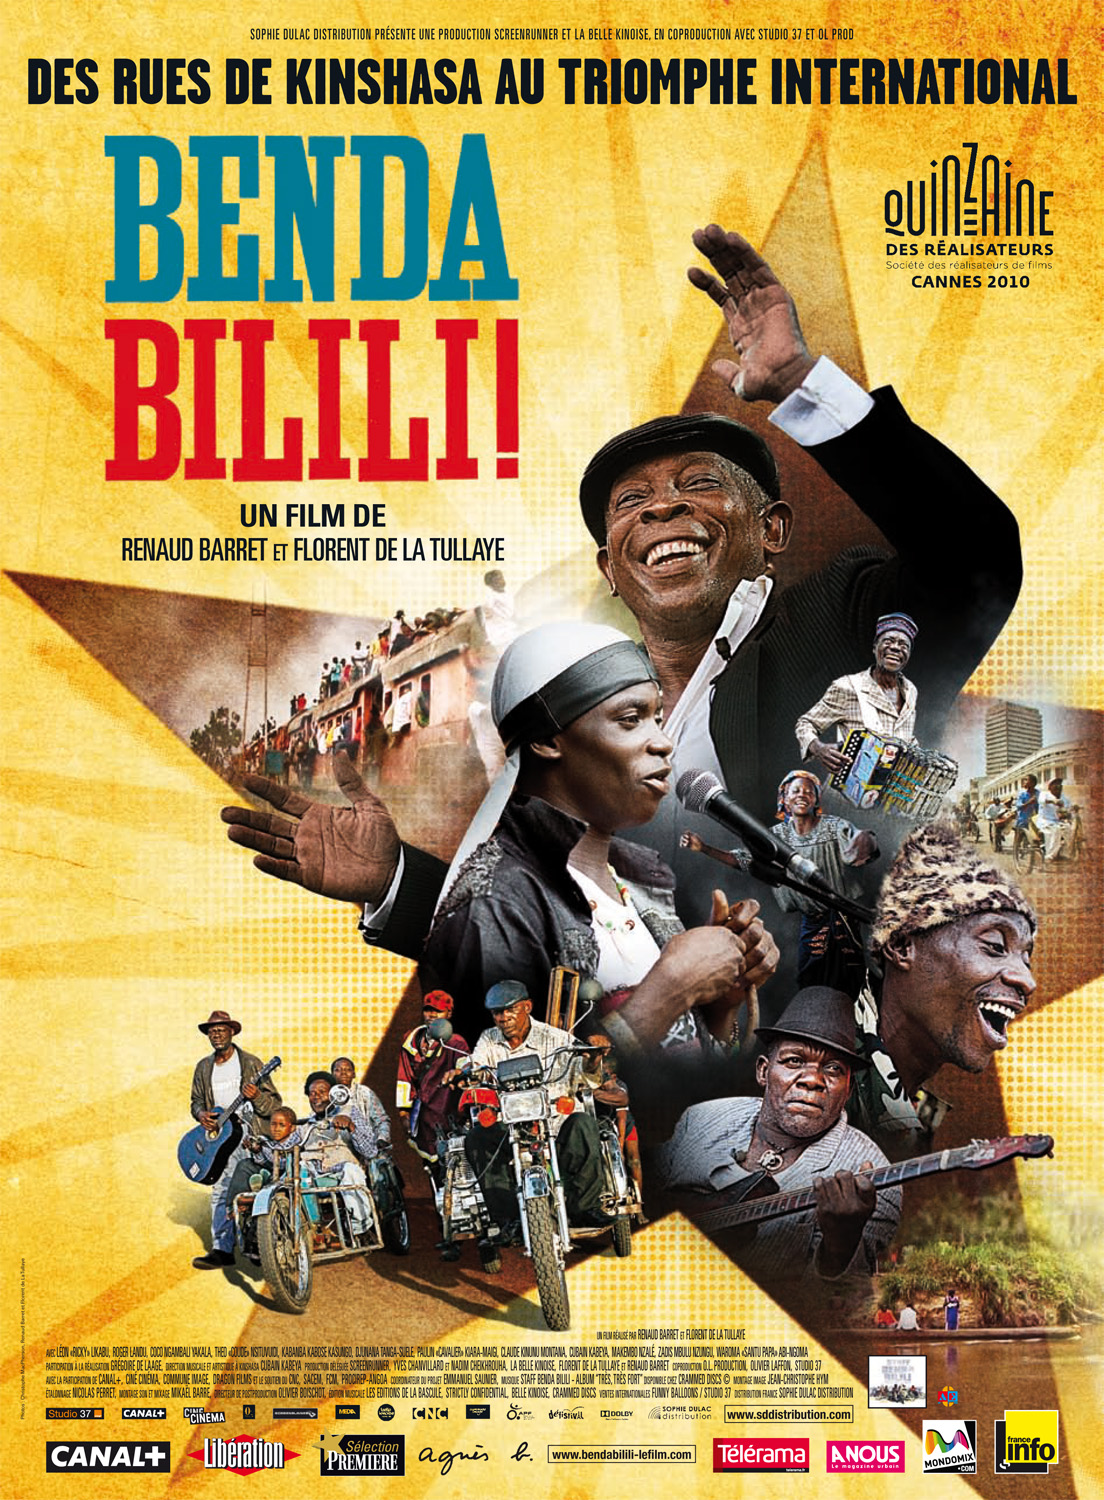 http://zabeth.files.wordpress.com/2010/09/benda-bilili-affiche-france.jpg